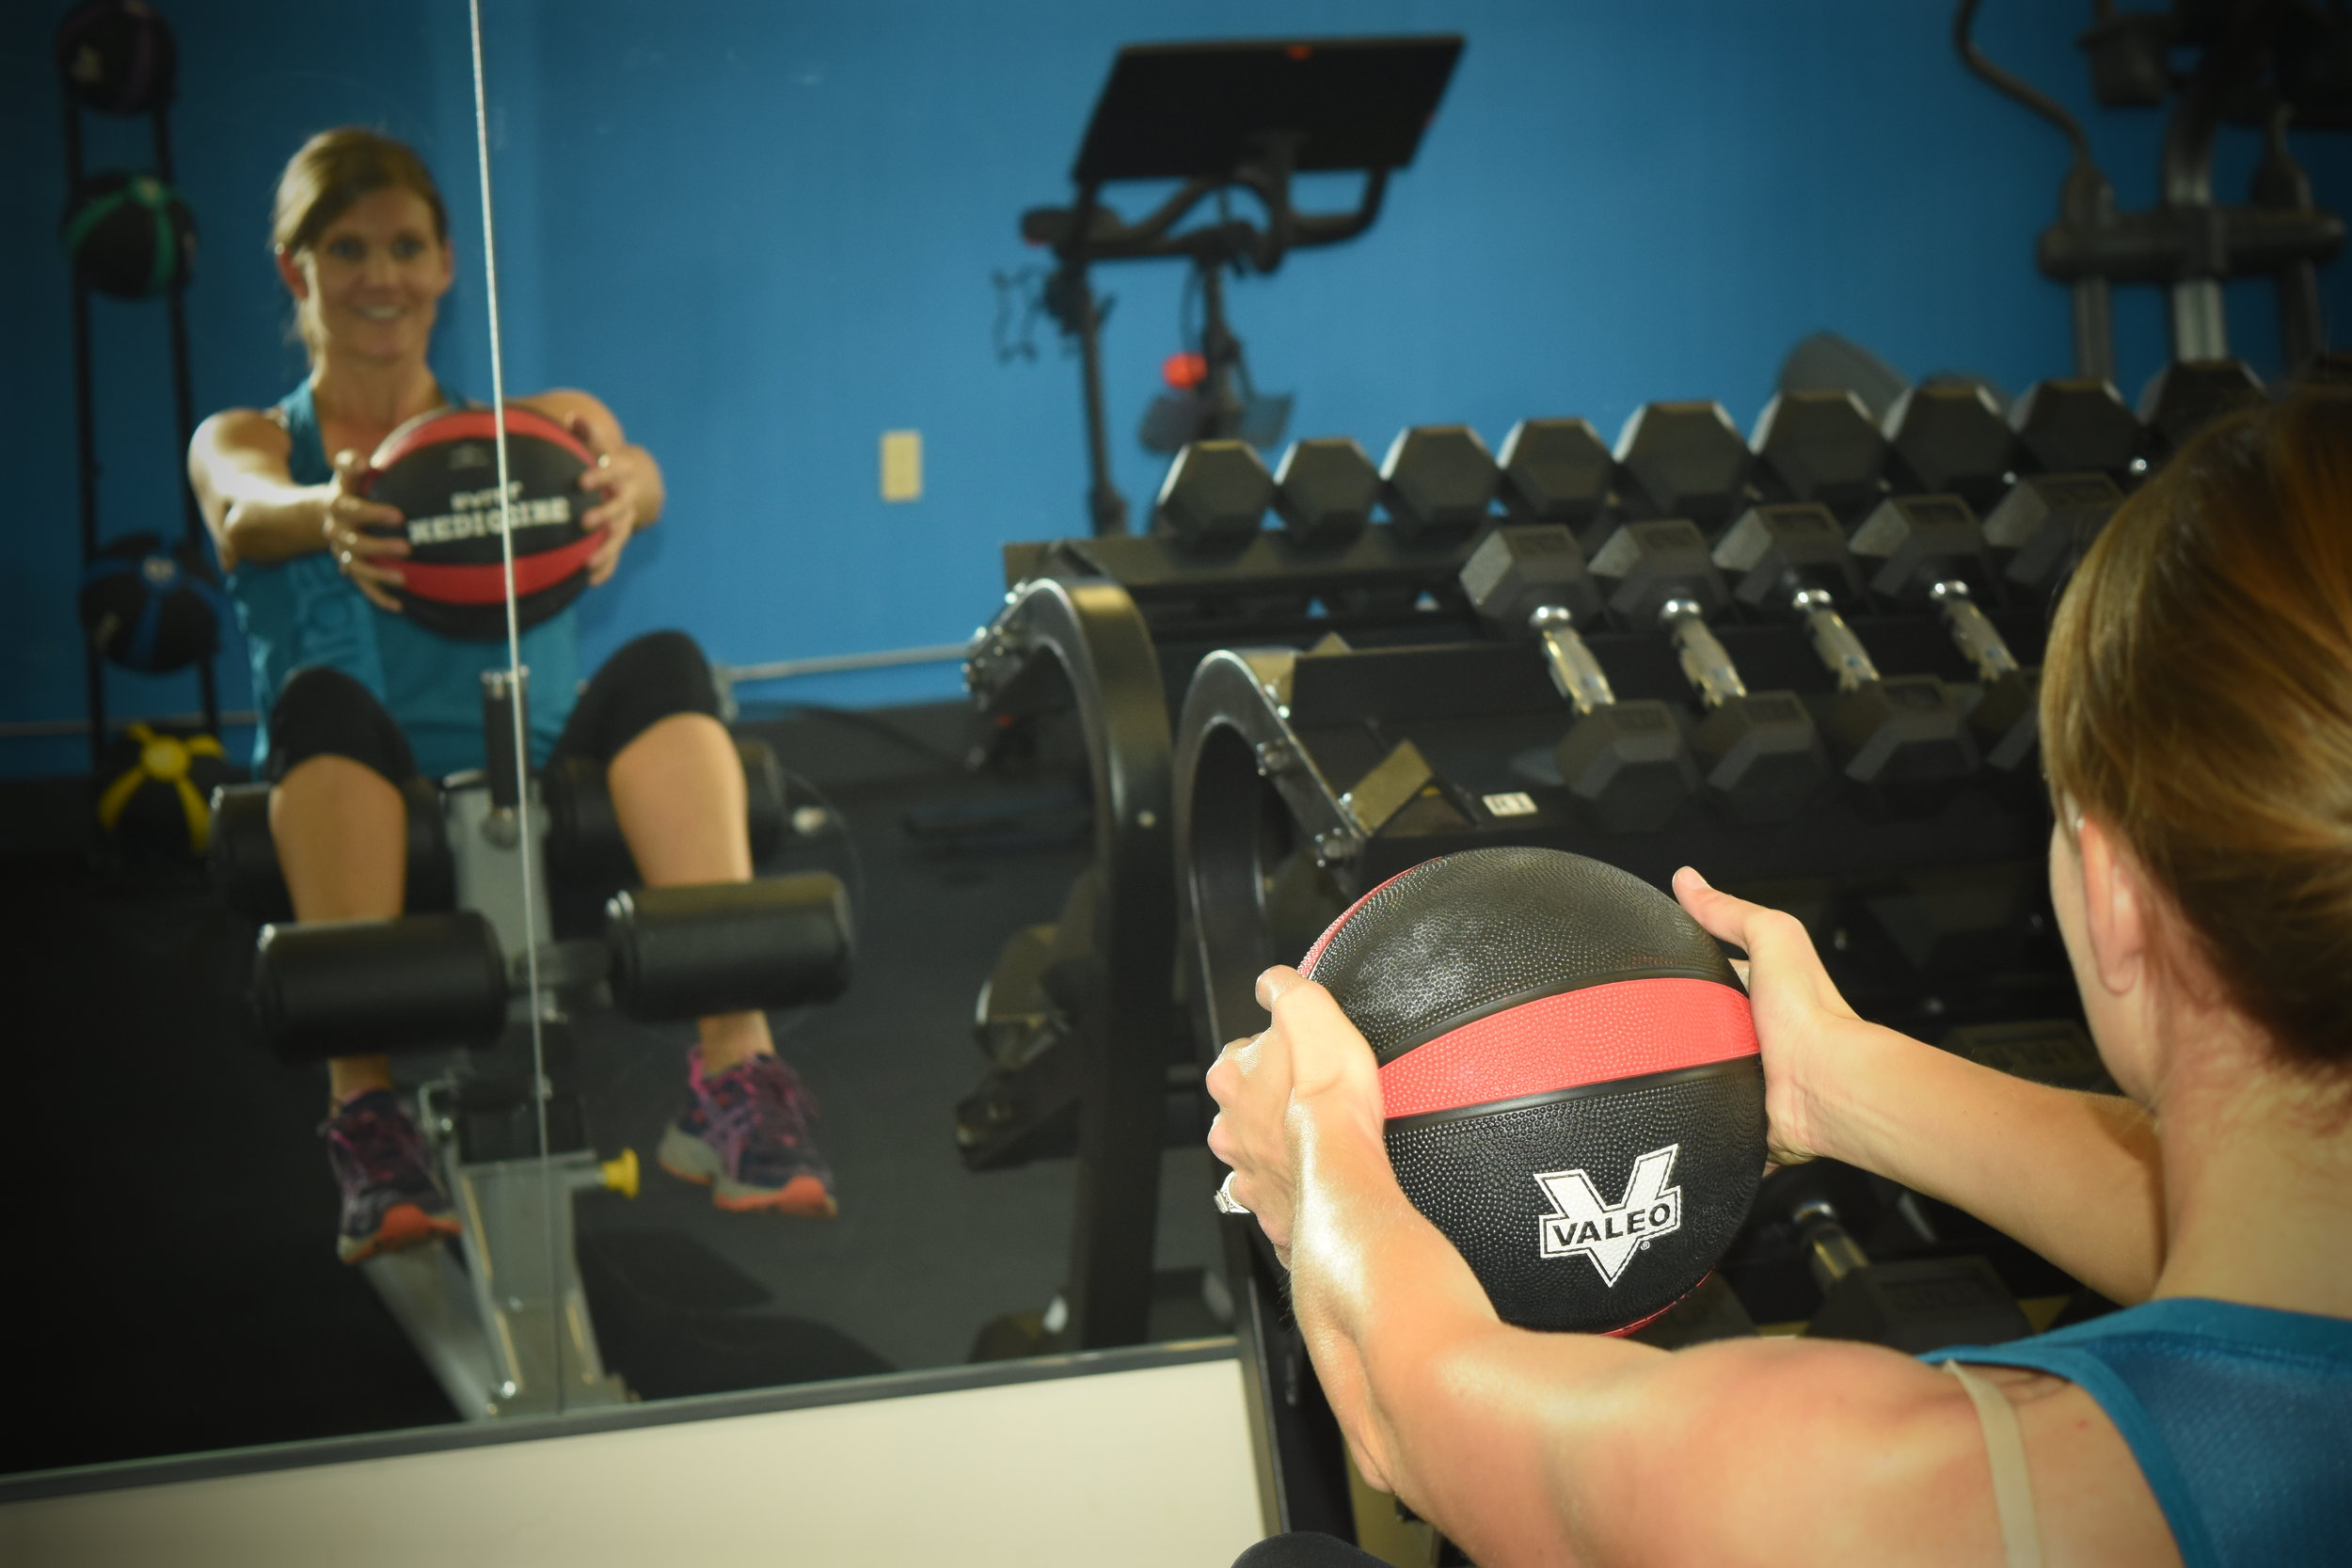 kristin ball workout strong strength fitness exercise gym crested butte south key card access.JPG